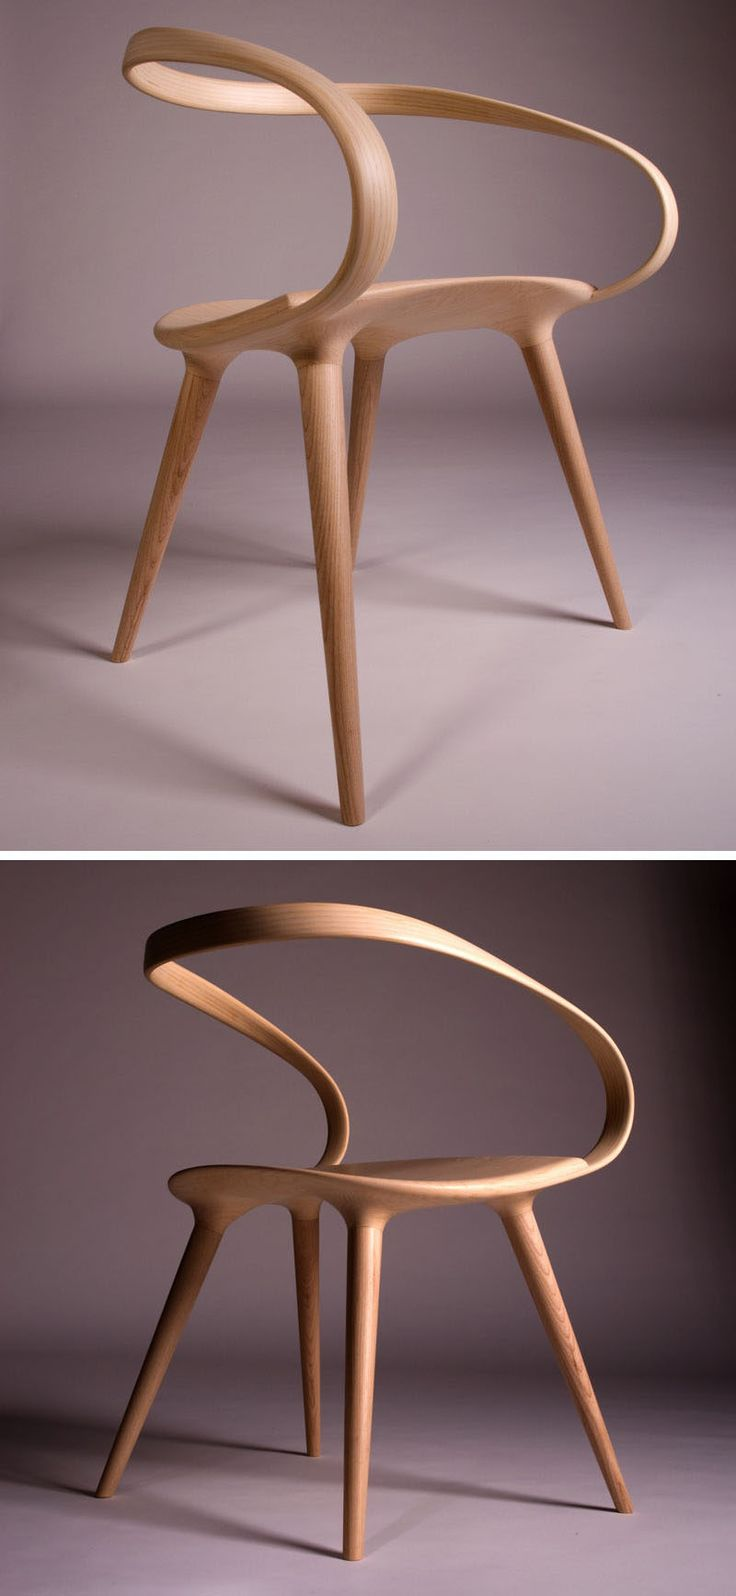 best wood chair design ideas on pinterest  chair design  - the velo chair uses a single piece of bent wood as the backrest whenbritish designer jan waterston was creating the velo chair his inspirationcame from